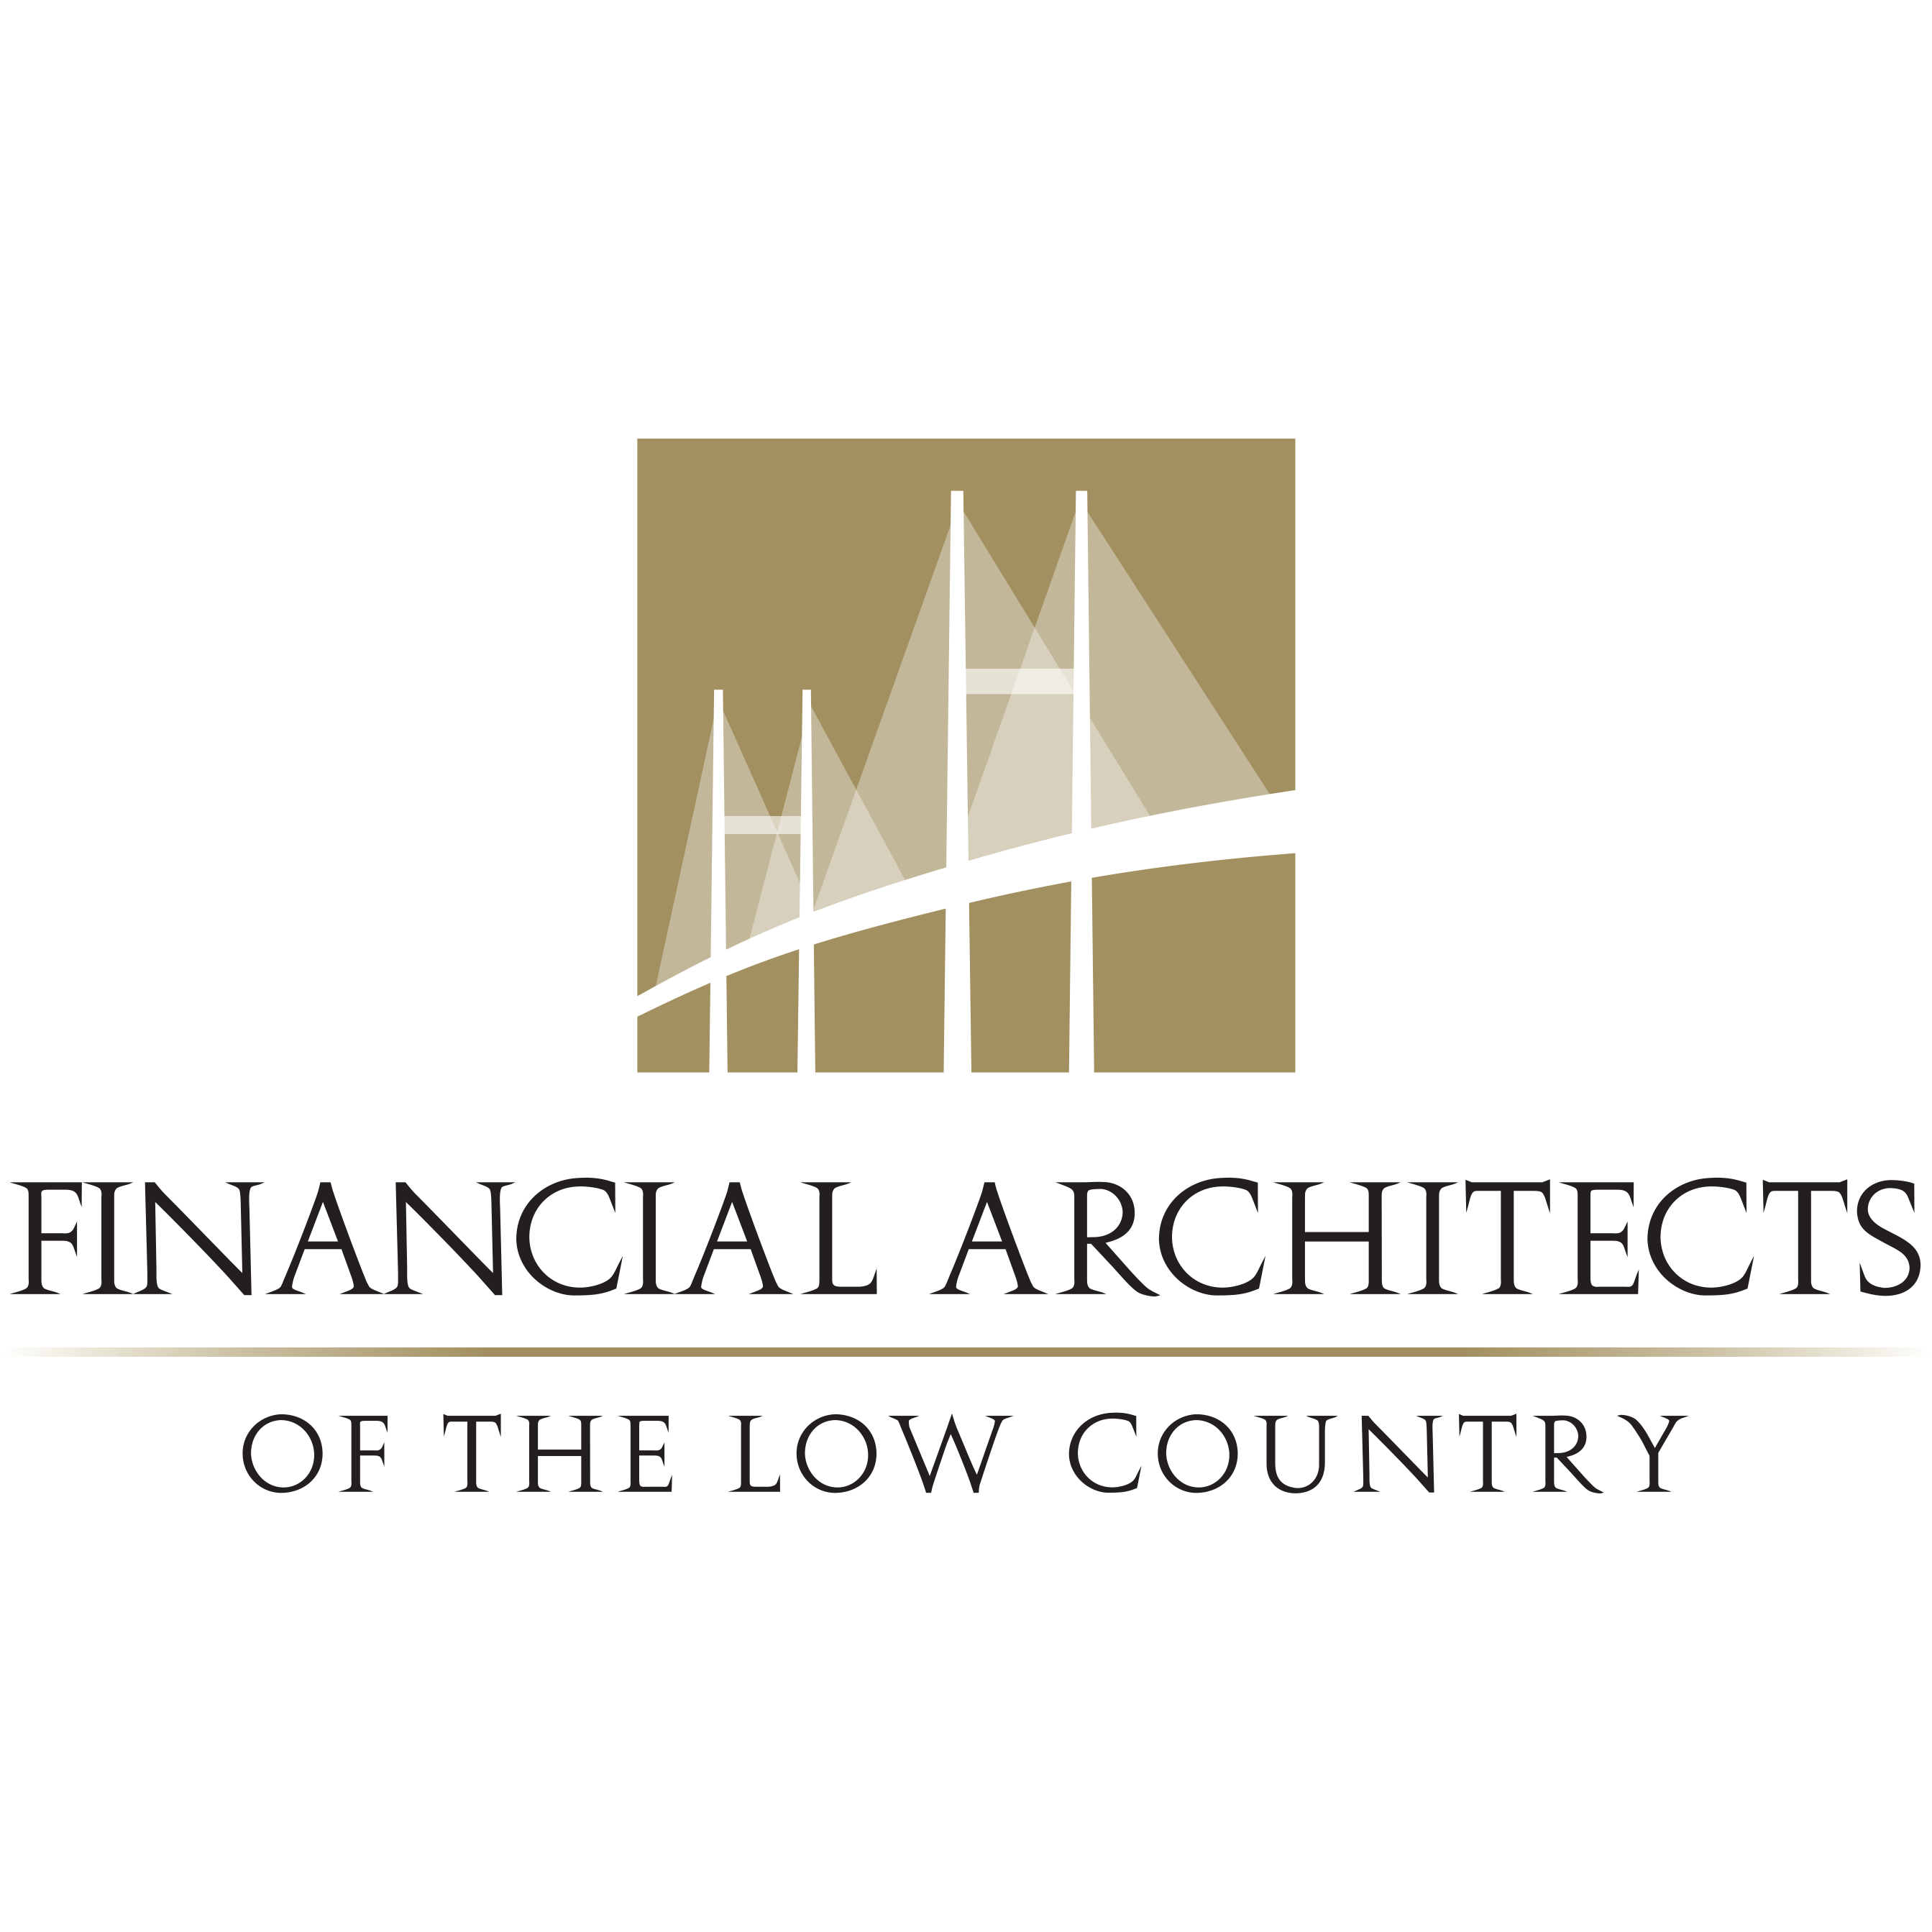 Financial Architects of the Low Country image 3